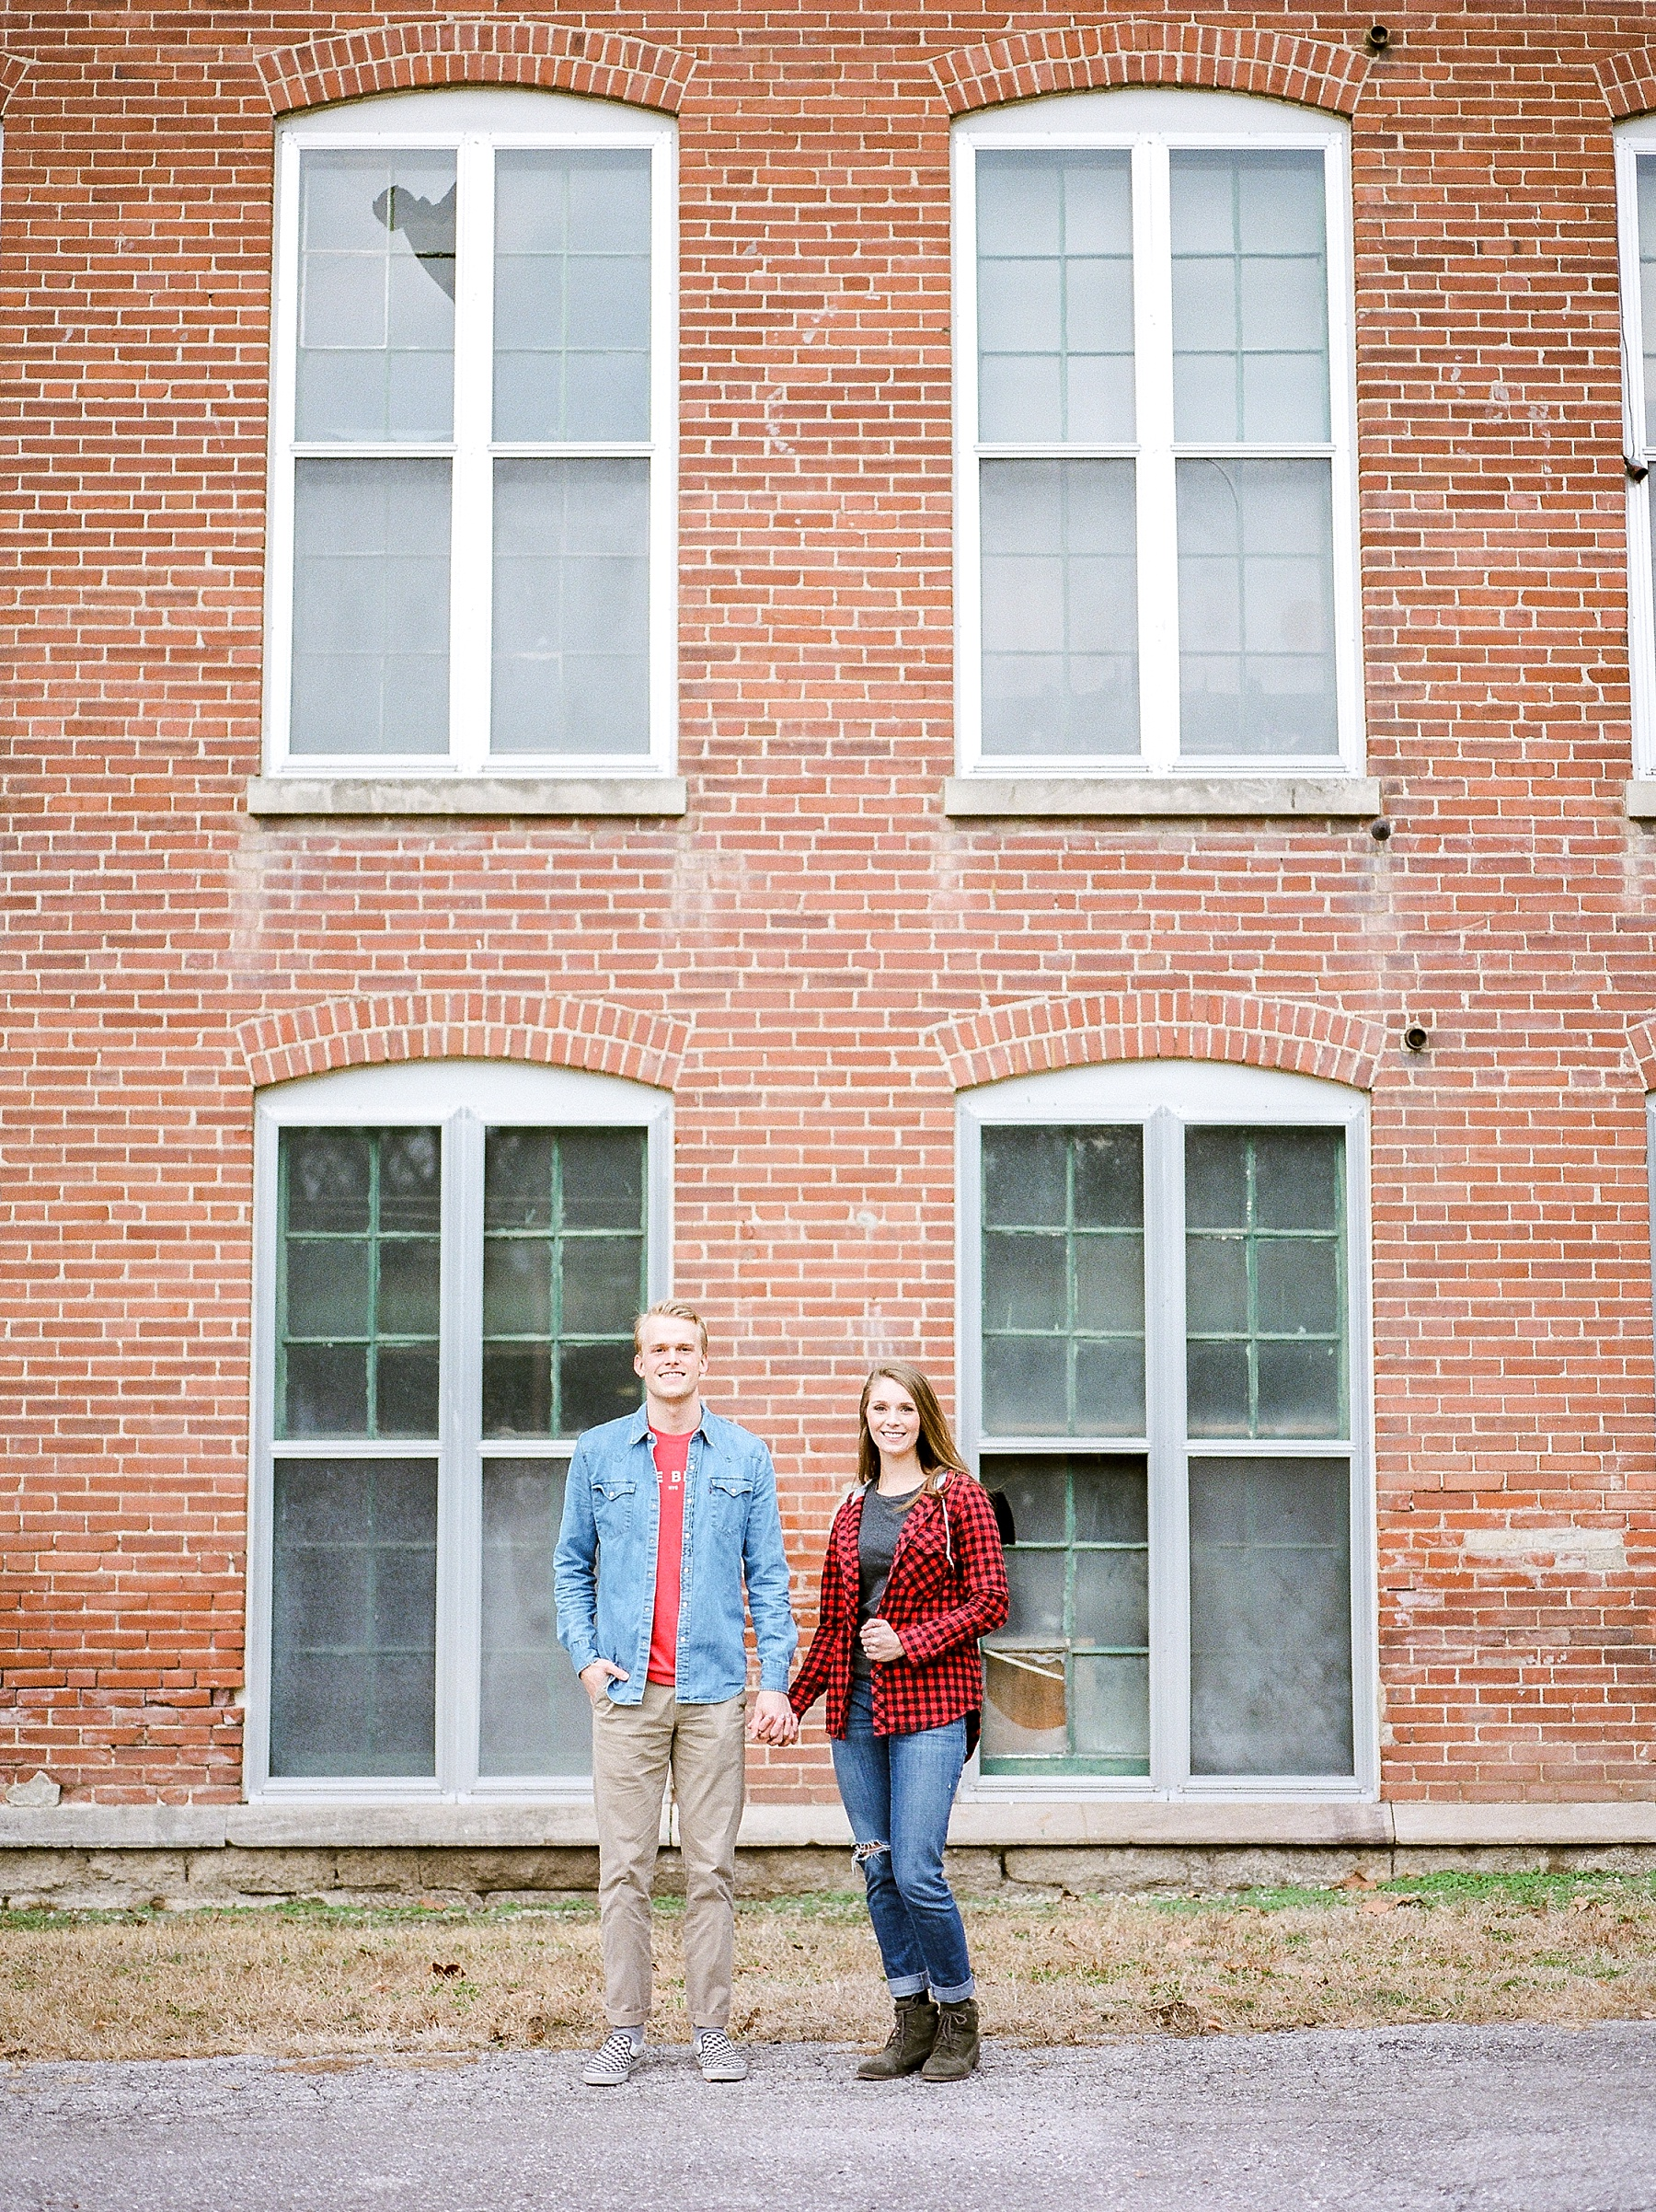 Downtown Jefferson City Engagement Session in Winter at Old Shoe Factory by Kelsi Kliethermes Photography Kansas City Missouri Wedding Photographer_0010.jpg